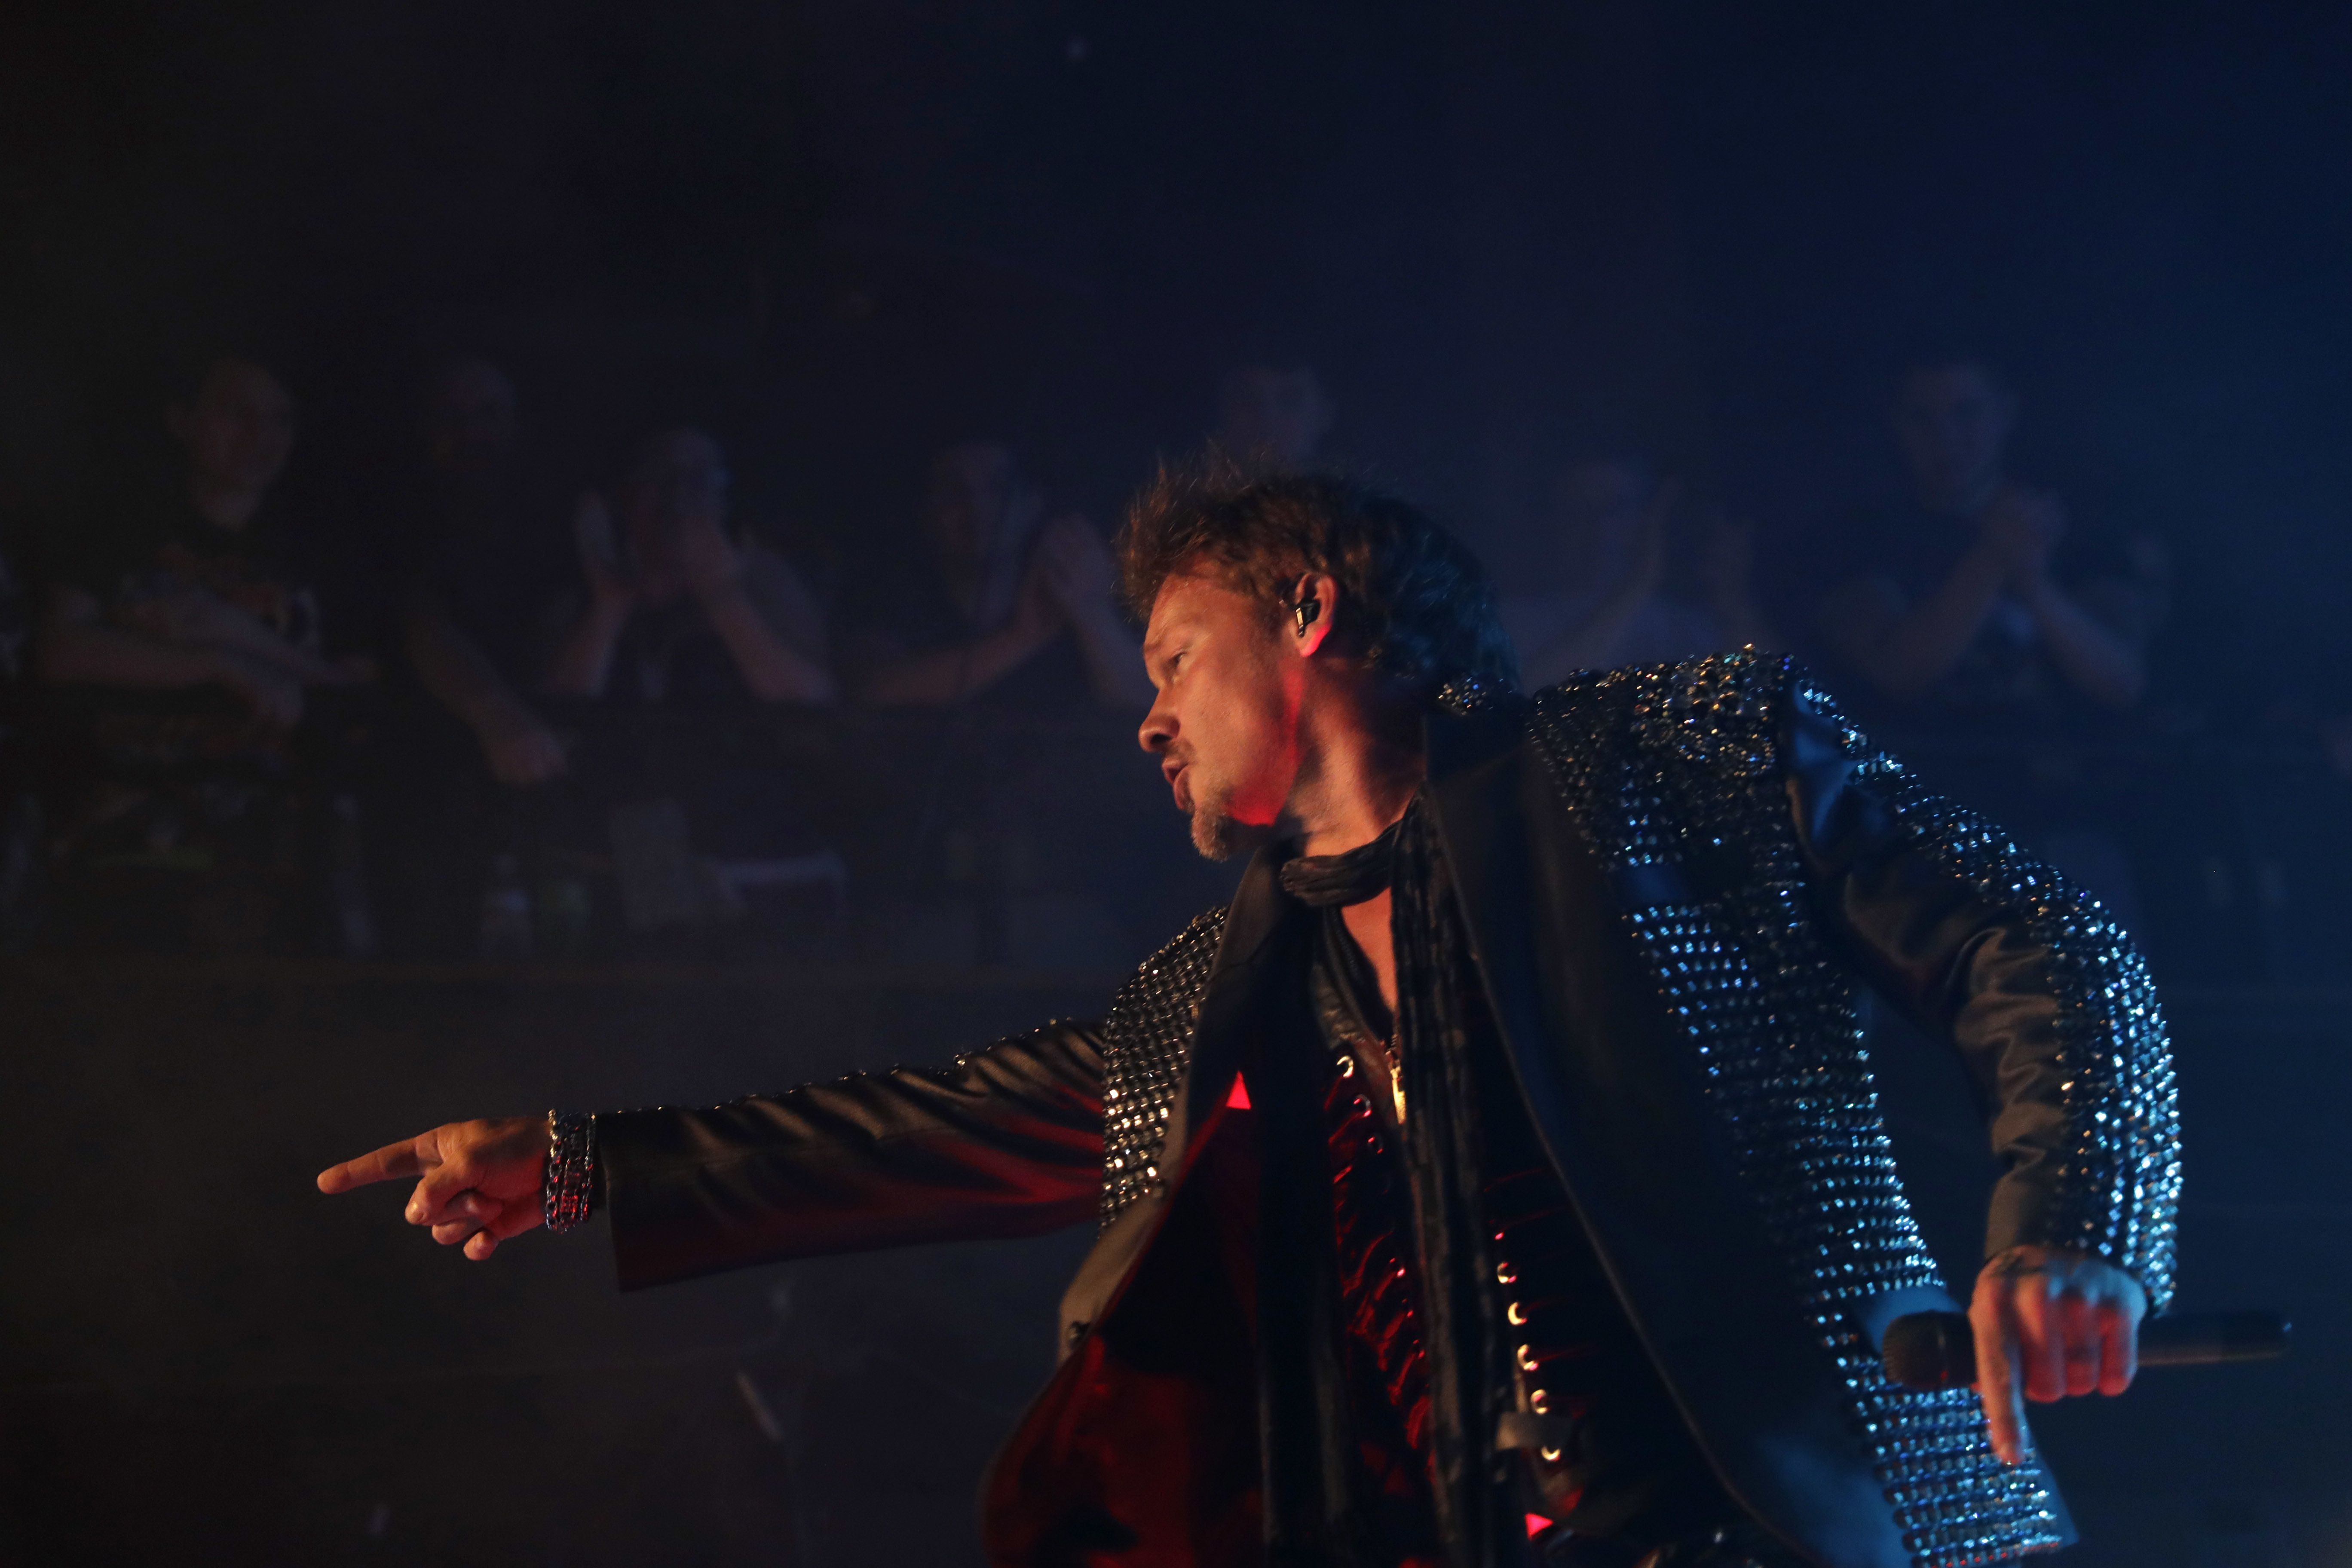 Lead singer Chris Jericho of the band Fozzy performs onstage at the Chameleon Club in Lancaster, Pa., May 17, 2017.